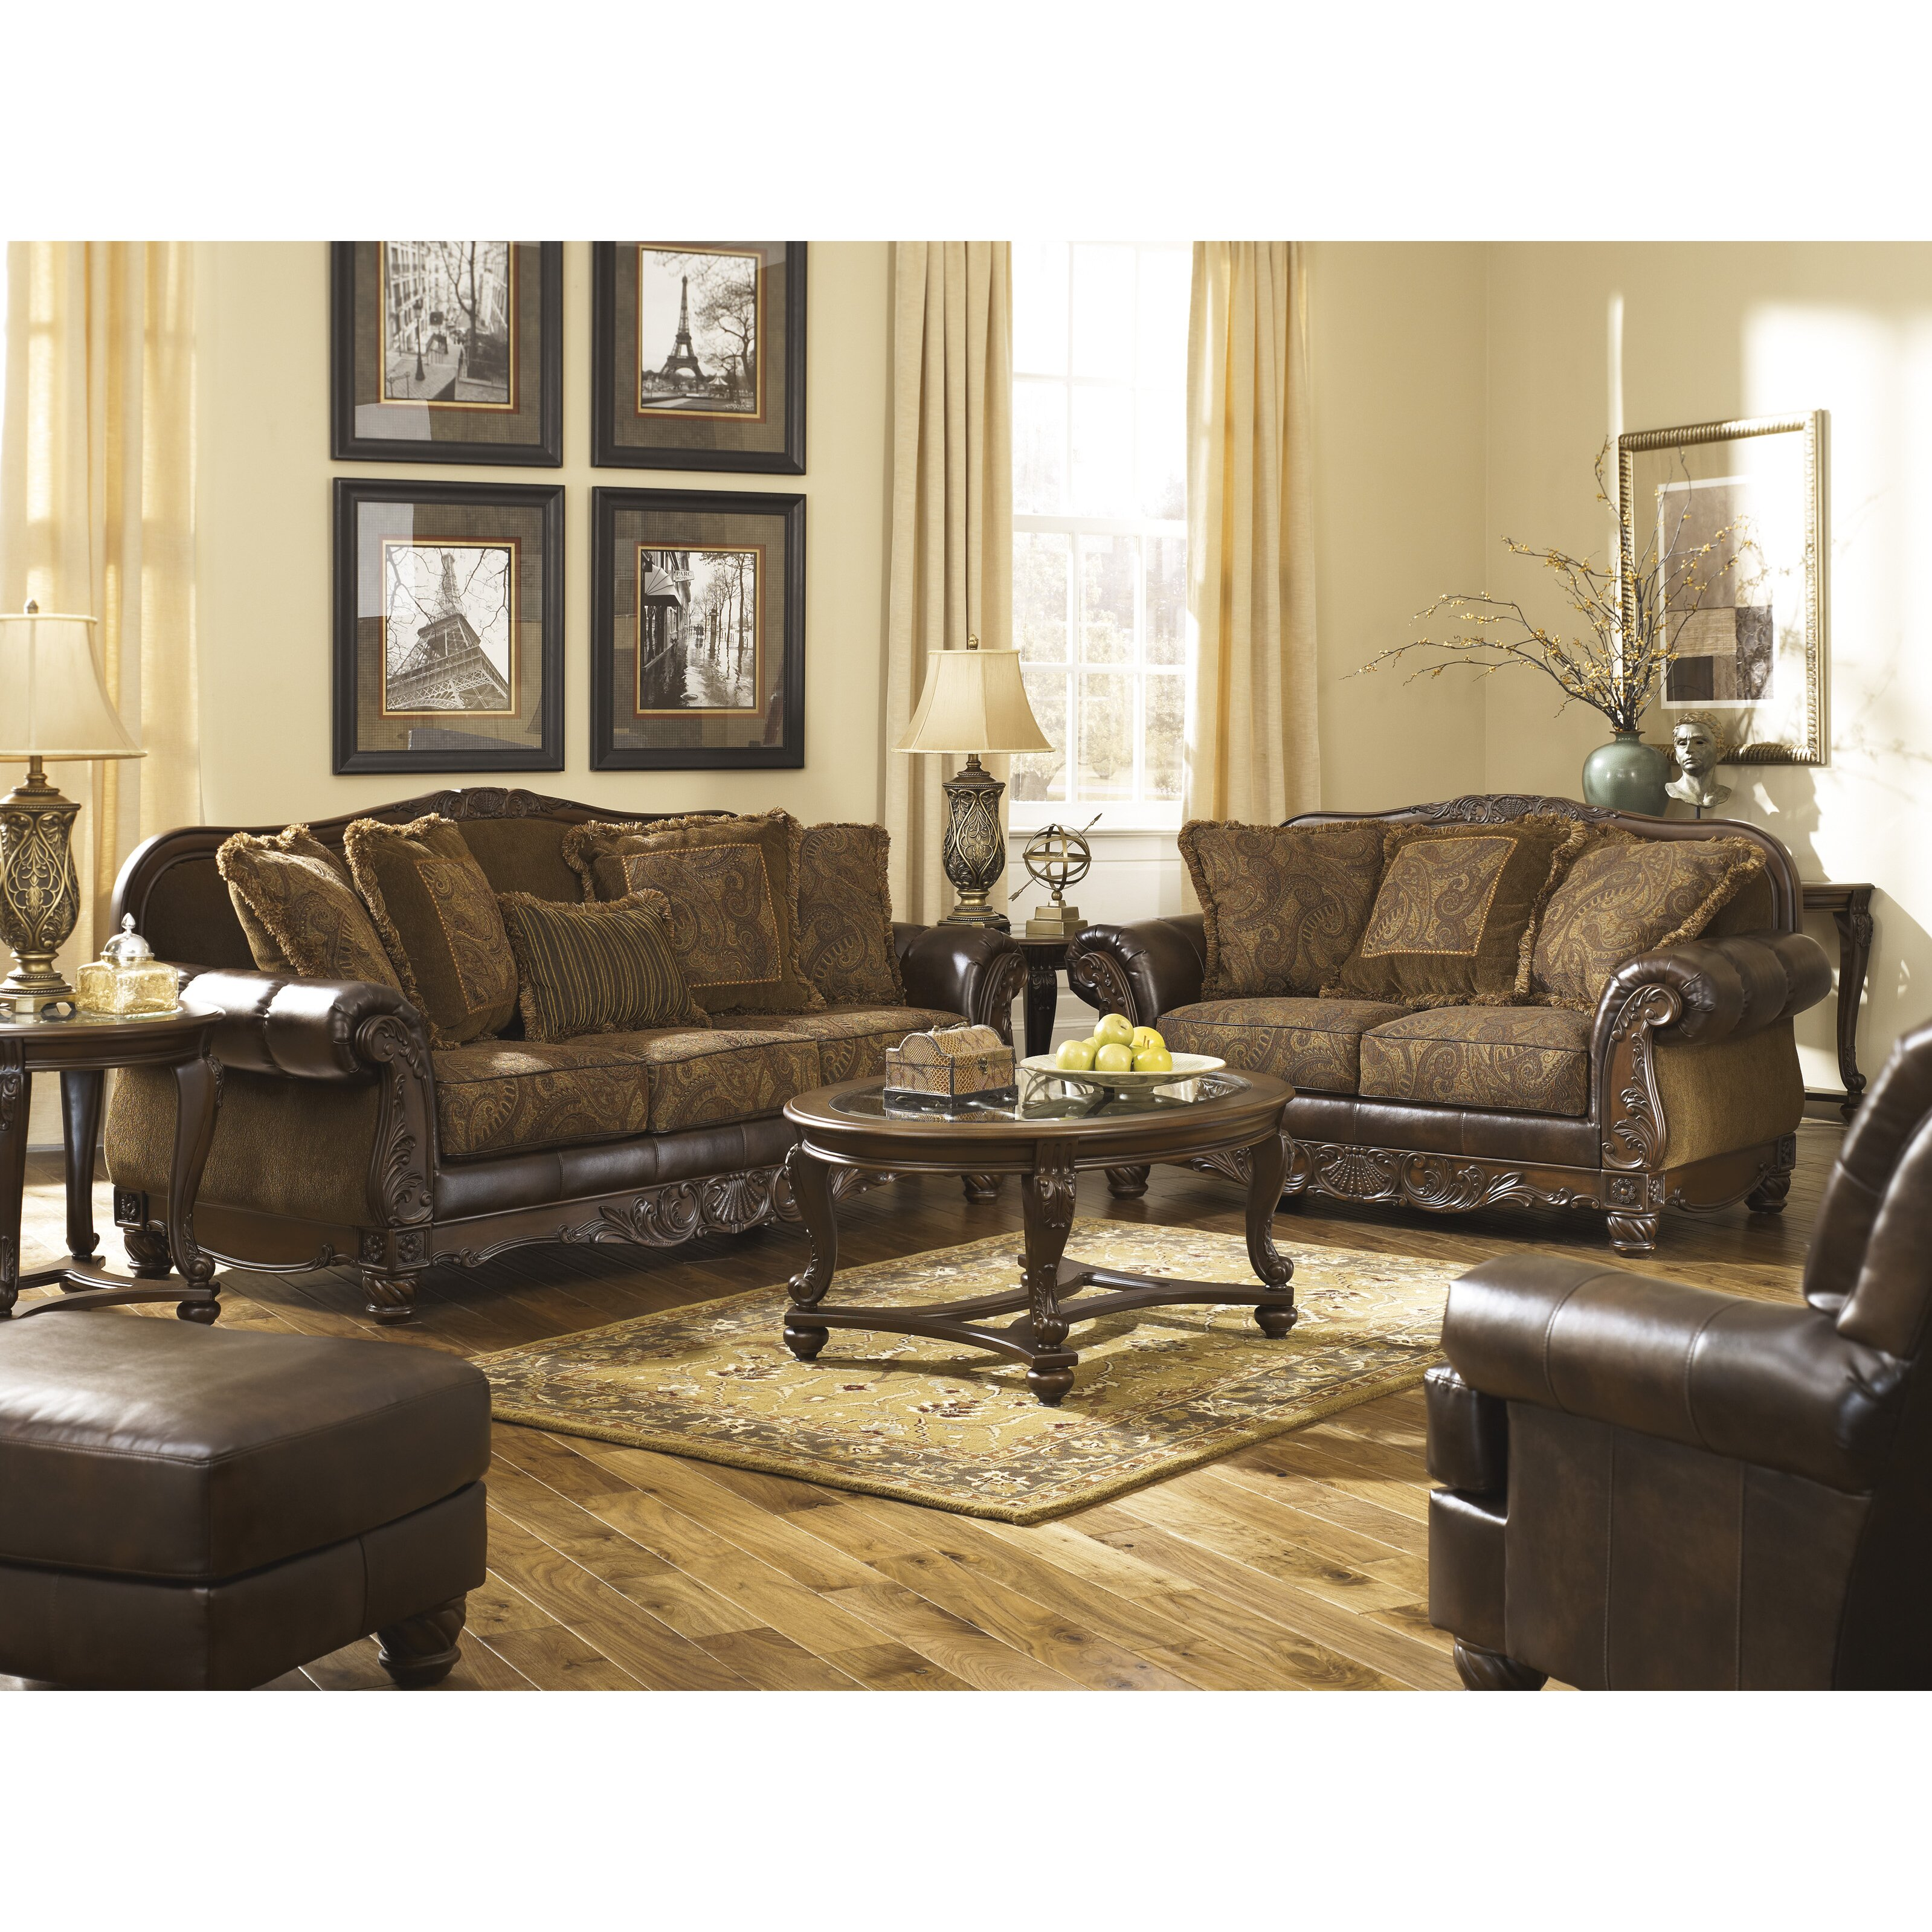 Ashley Curniture: Signature Design By Ashley Newbern Living Room Collection